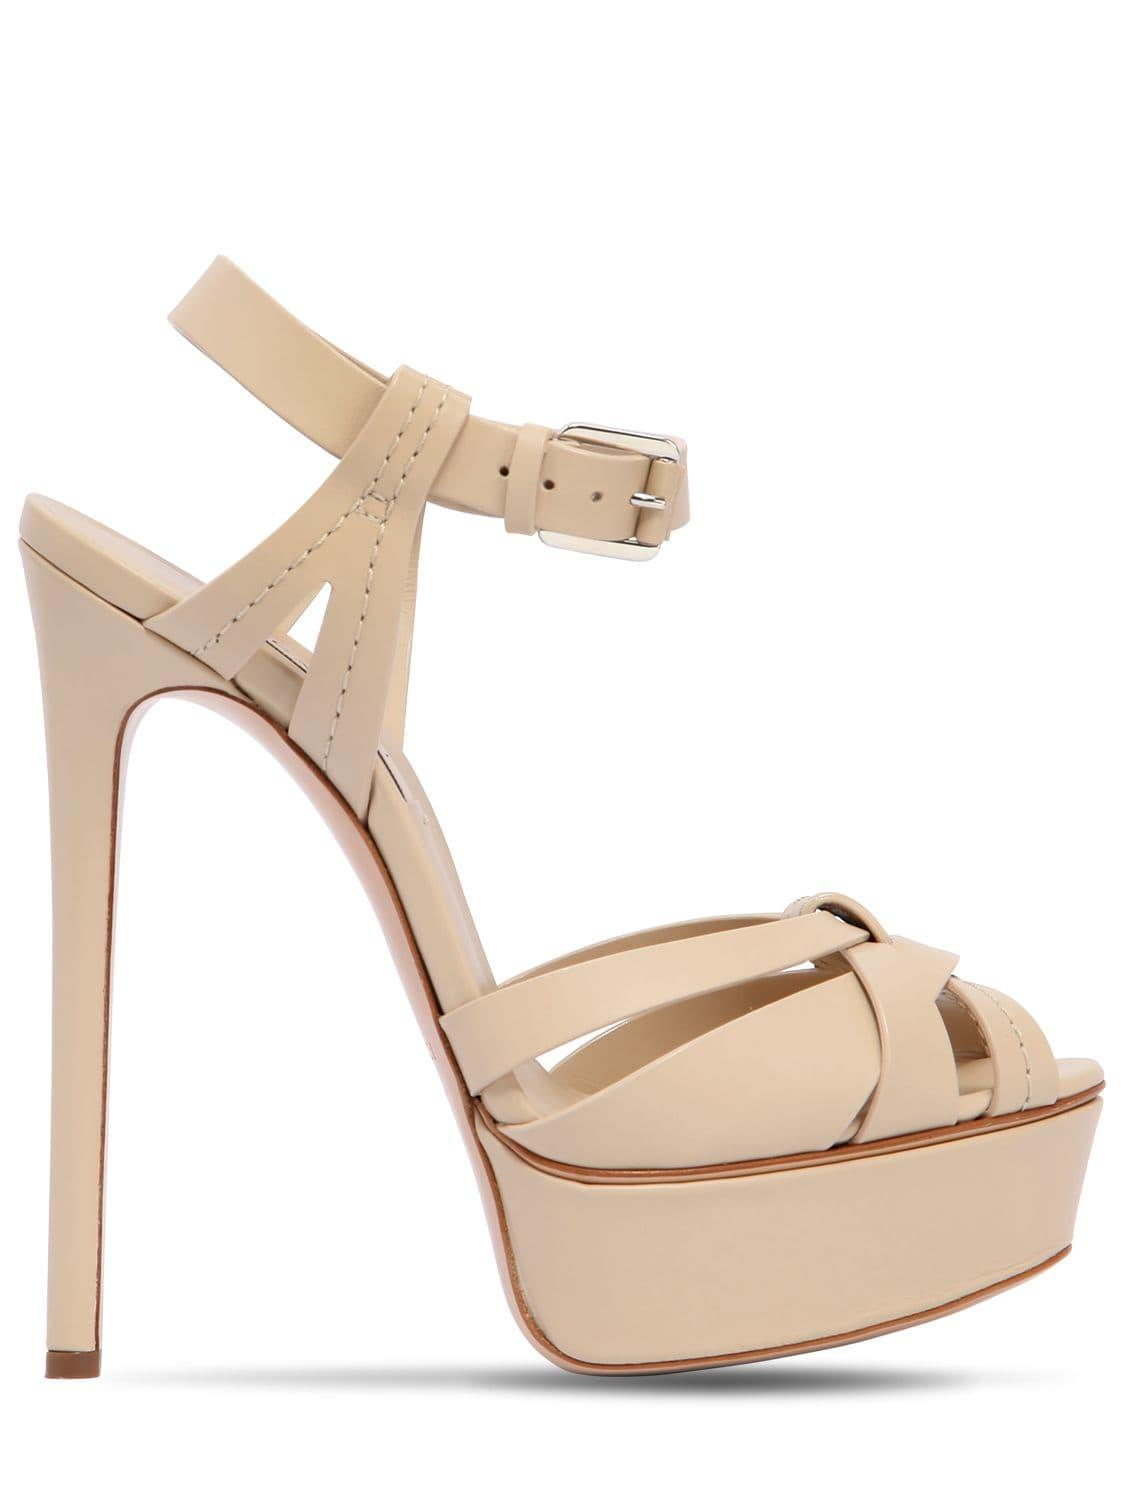 78a331fa0c Casadei 140mm Leather Sandals in Natural - Lyst